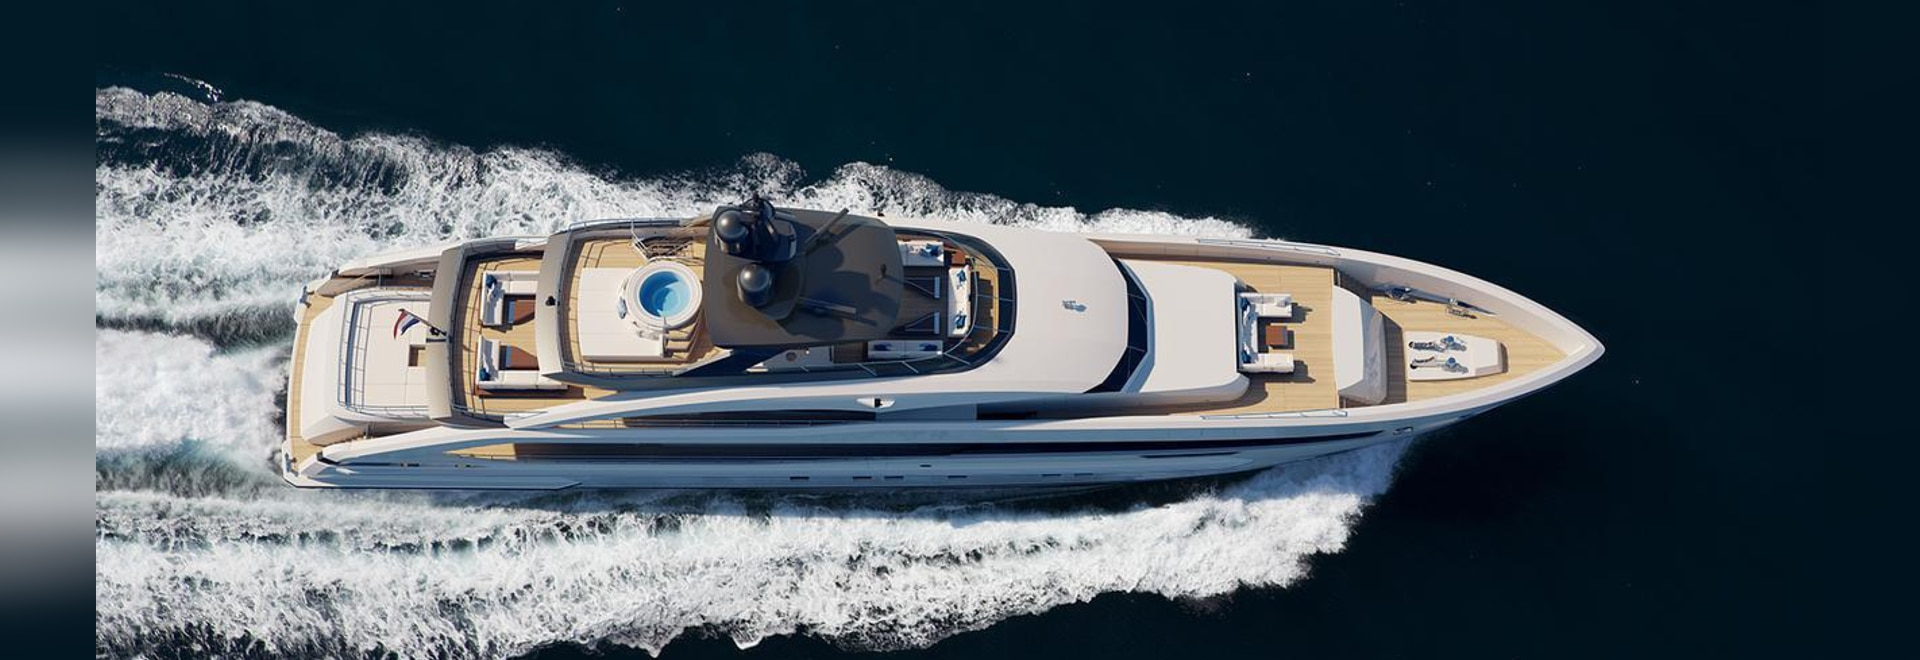 The yacht is currently under construction at Heesen and due for a 2021 delivery